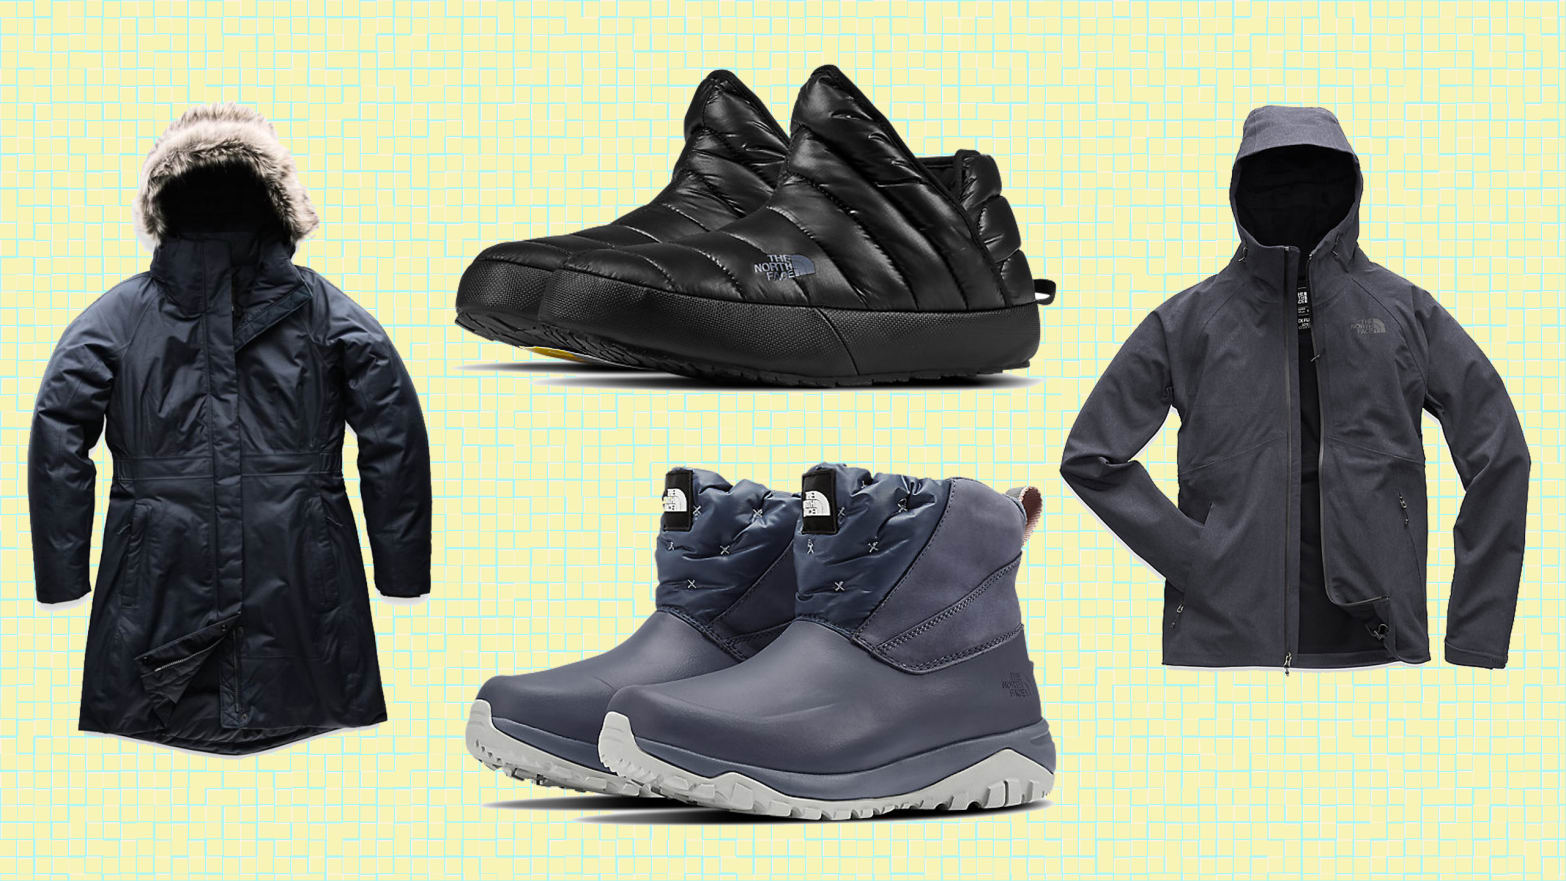 The North Face's Winter Sale Has Up To 30% Off Hundreds of Past Season Styles